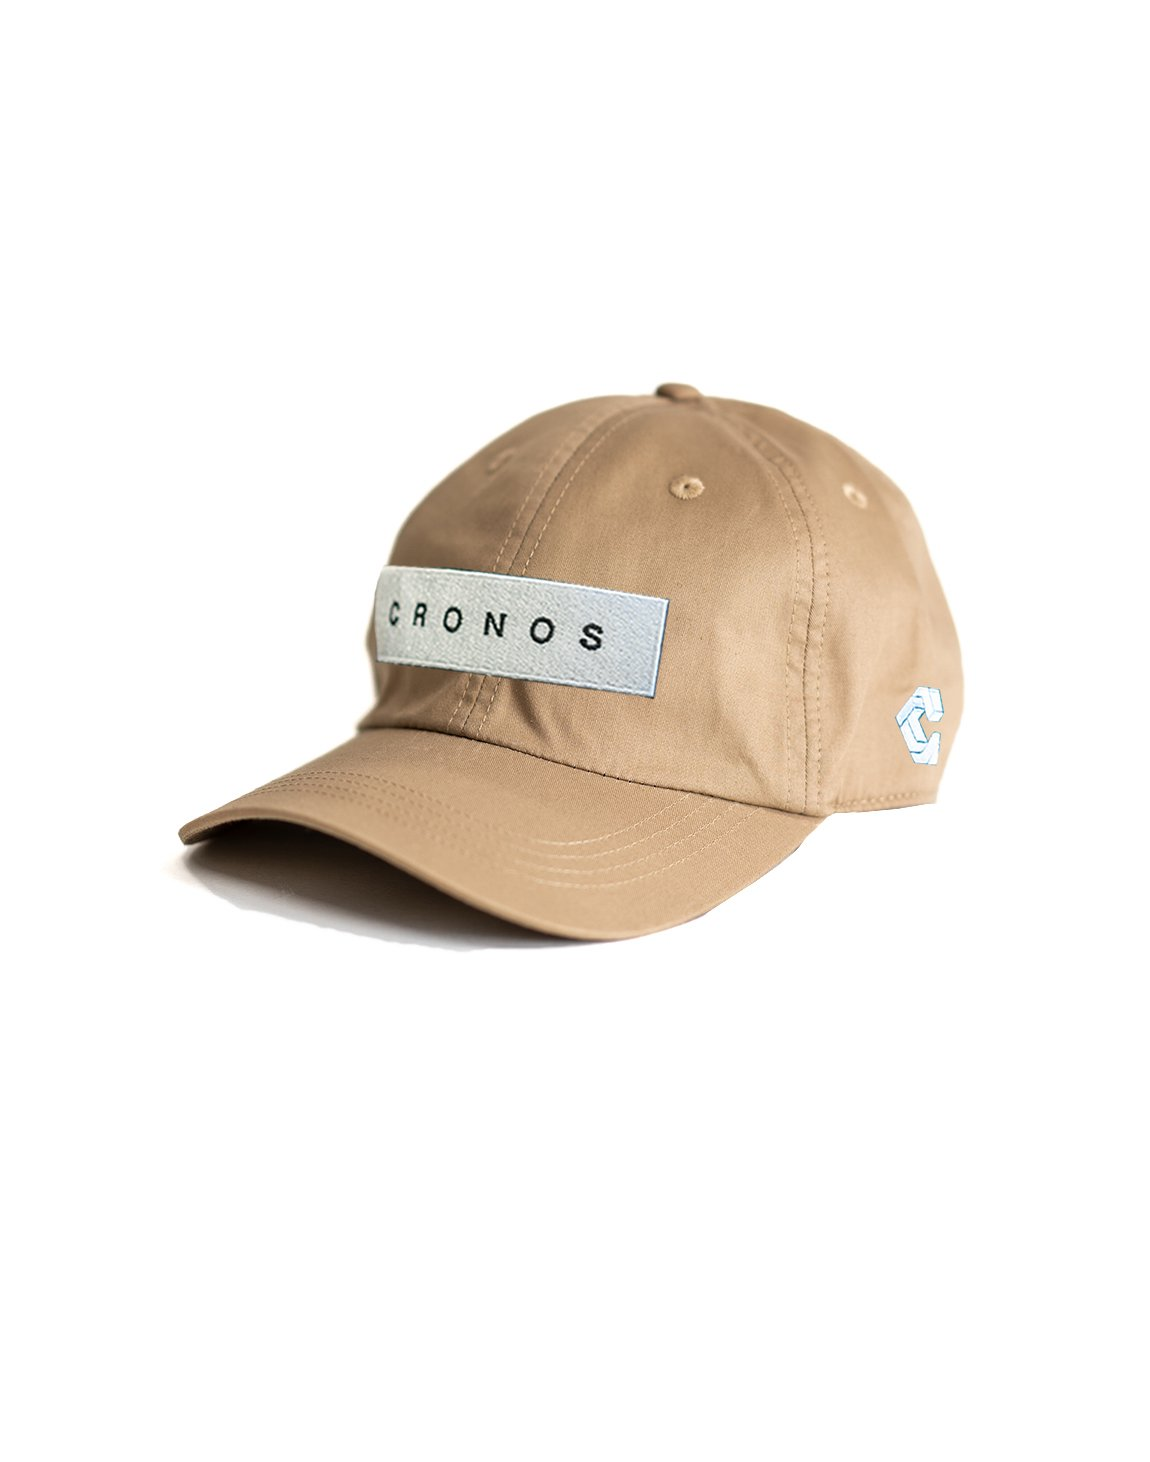 <img class='new_mark_img1' src='https://img.shop-pro.jp/img/new/icons1.gif' style='border:none;display:inline;margin:0px;padding:0px;width:auto;' />CRONOS BOX LOGO CAP 【BEIGE】